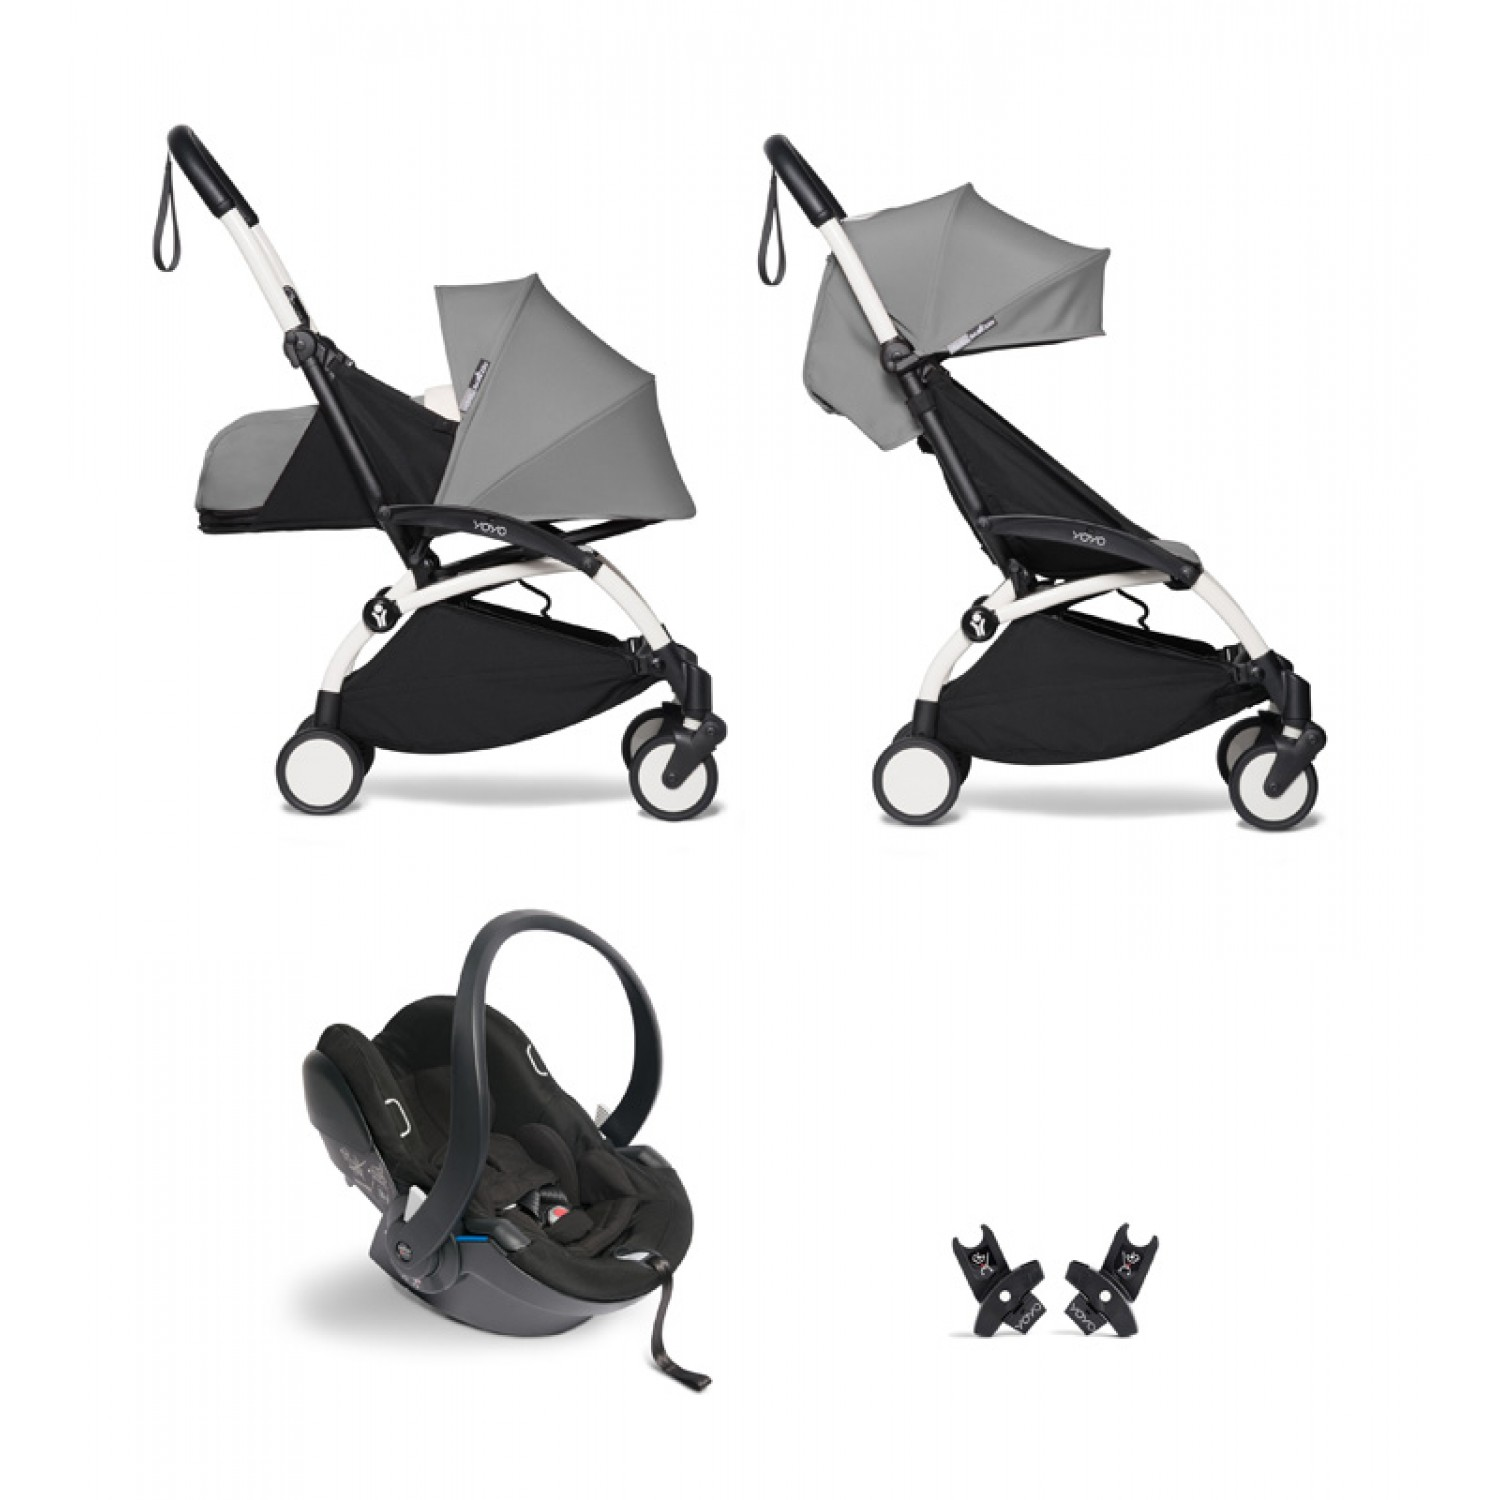 All-in-one BABYZEN stroller YOYO2 0+, car seat and 6+   | White Chassis Grey